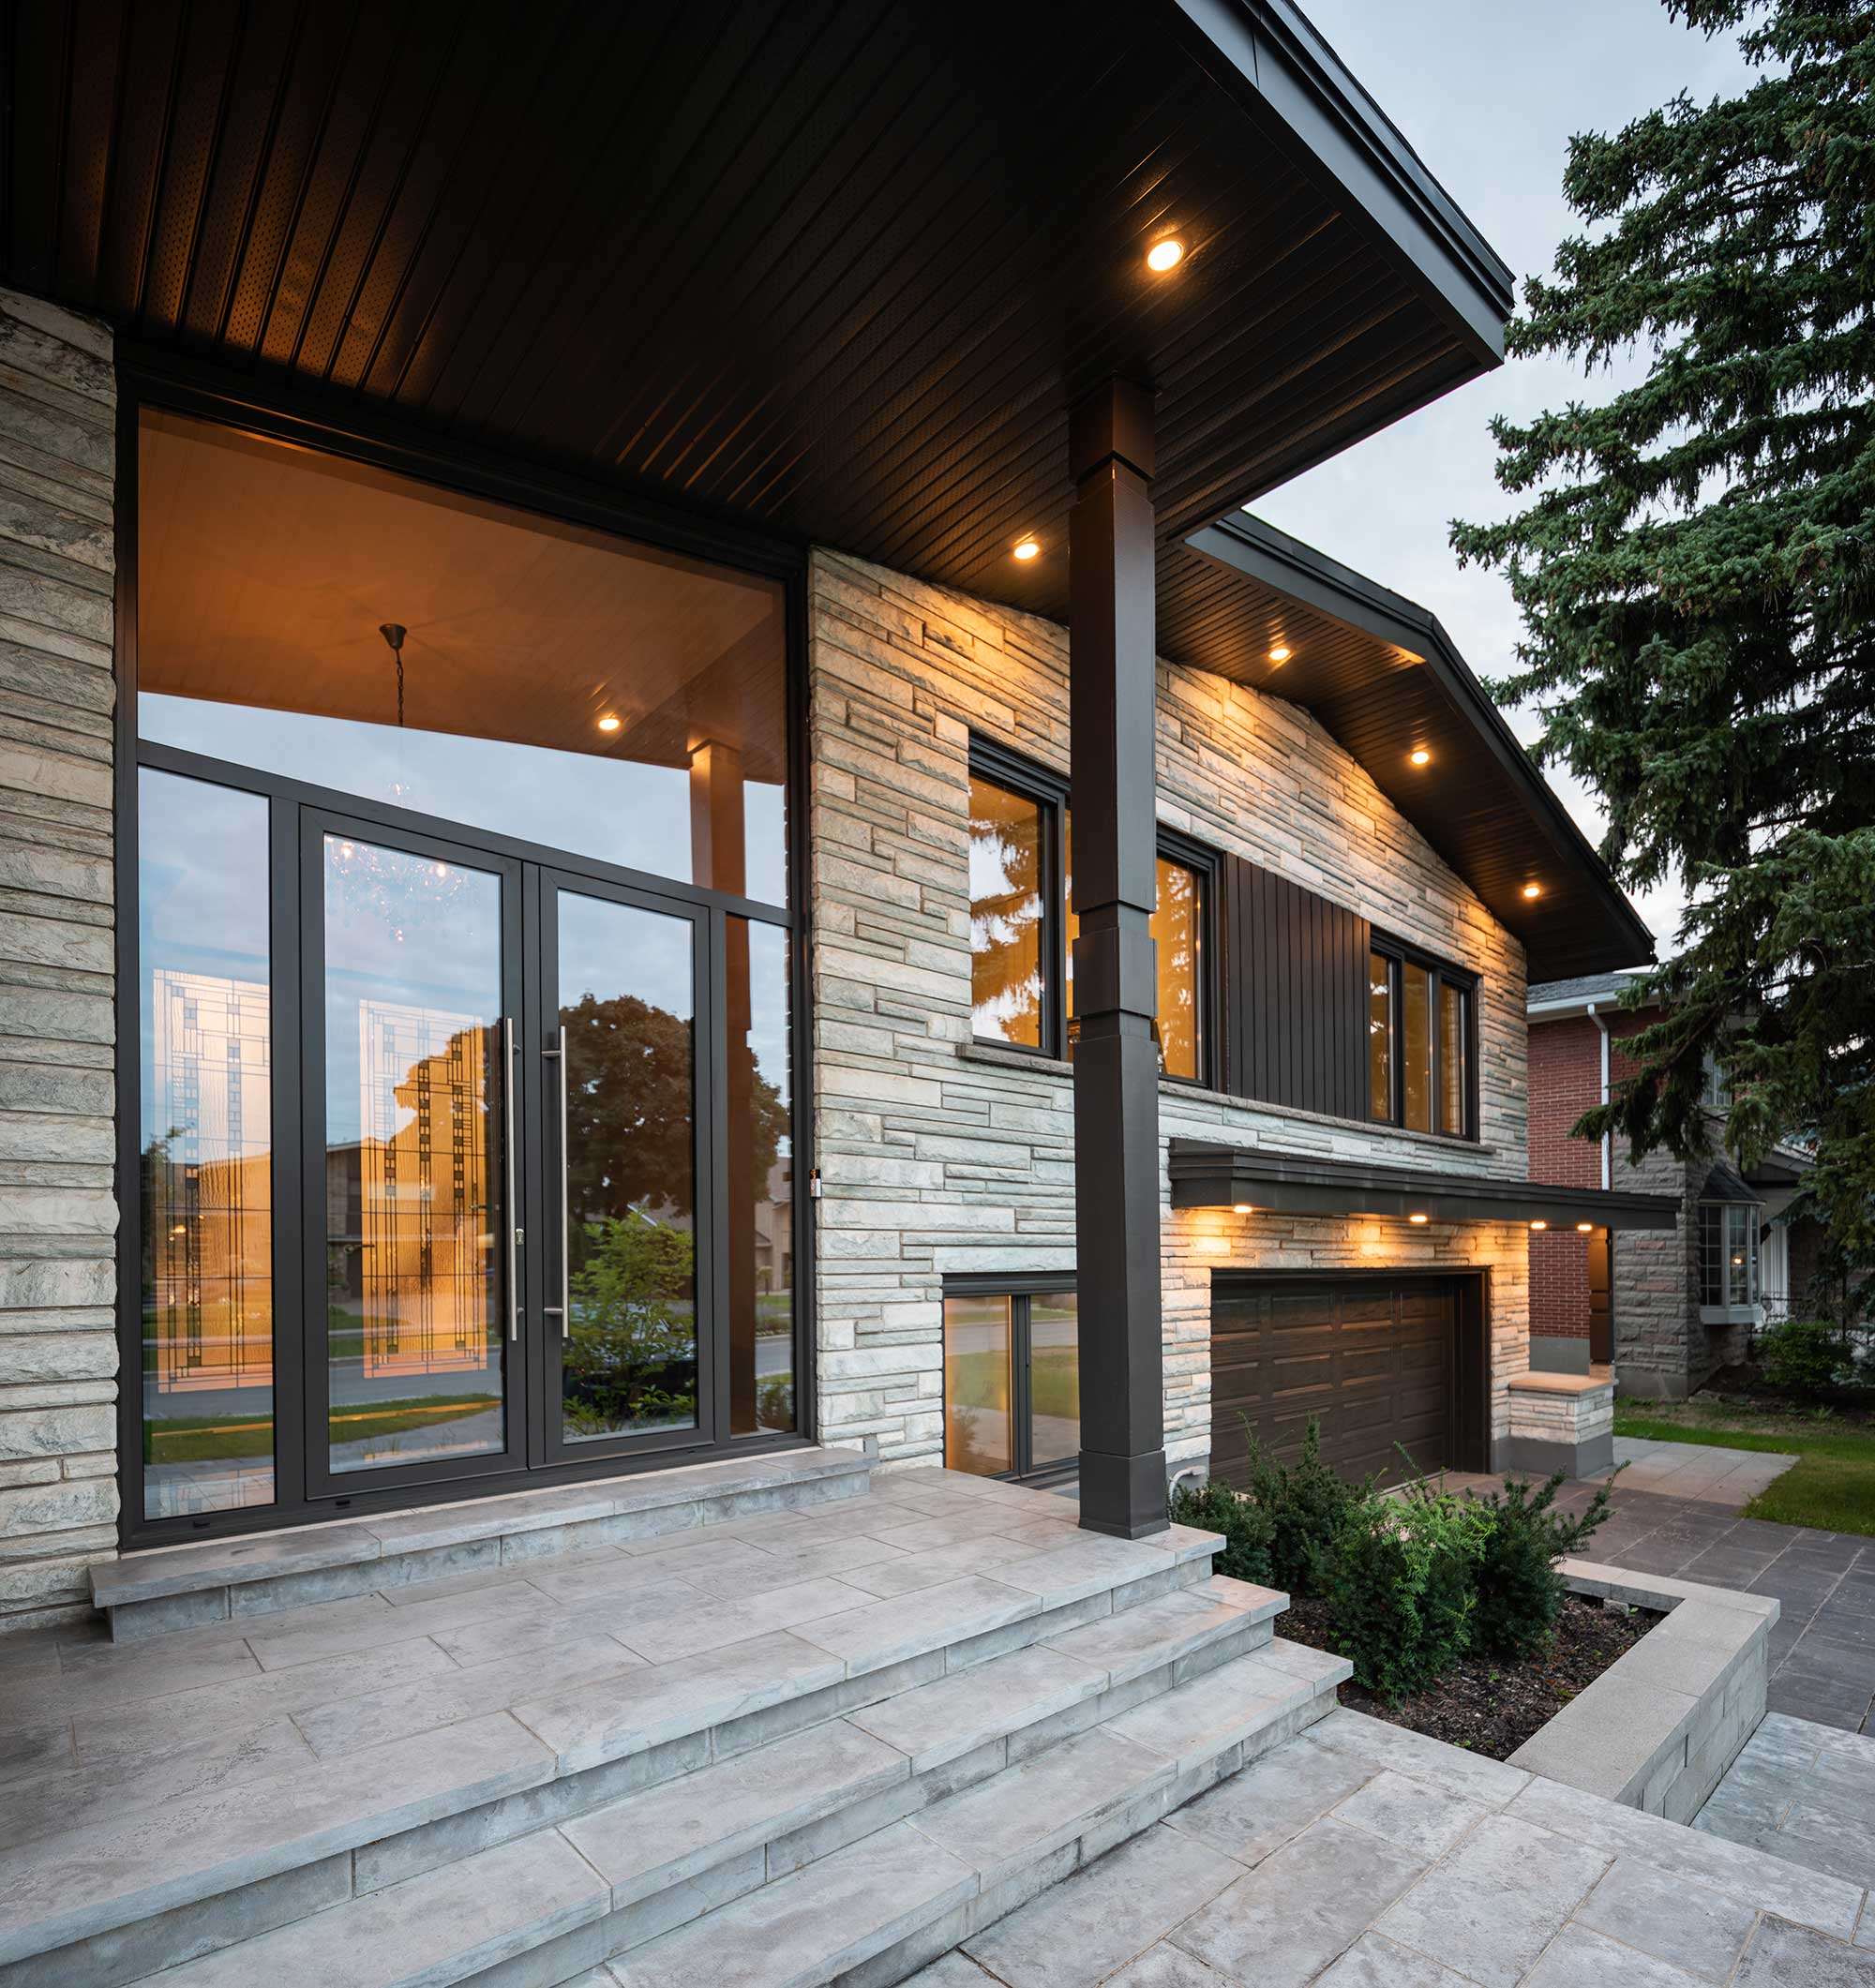 Woodbine residence outside entrance modern windows demeure Woodbine entrée extérieure tres modernes